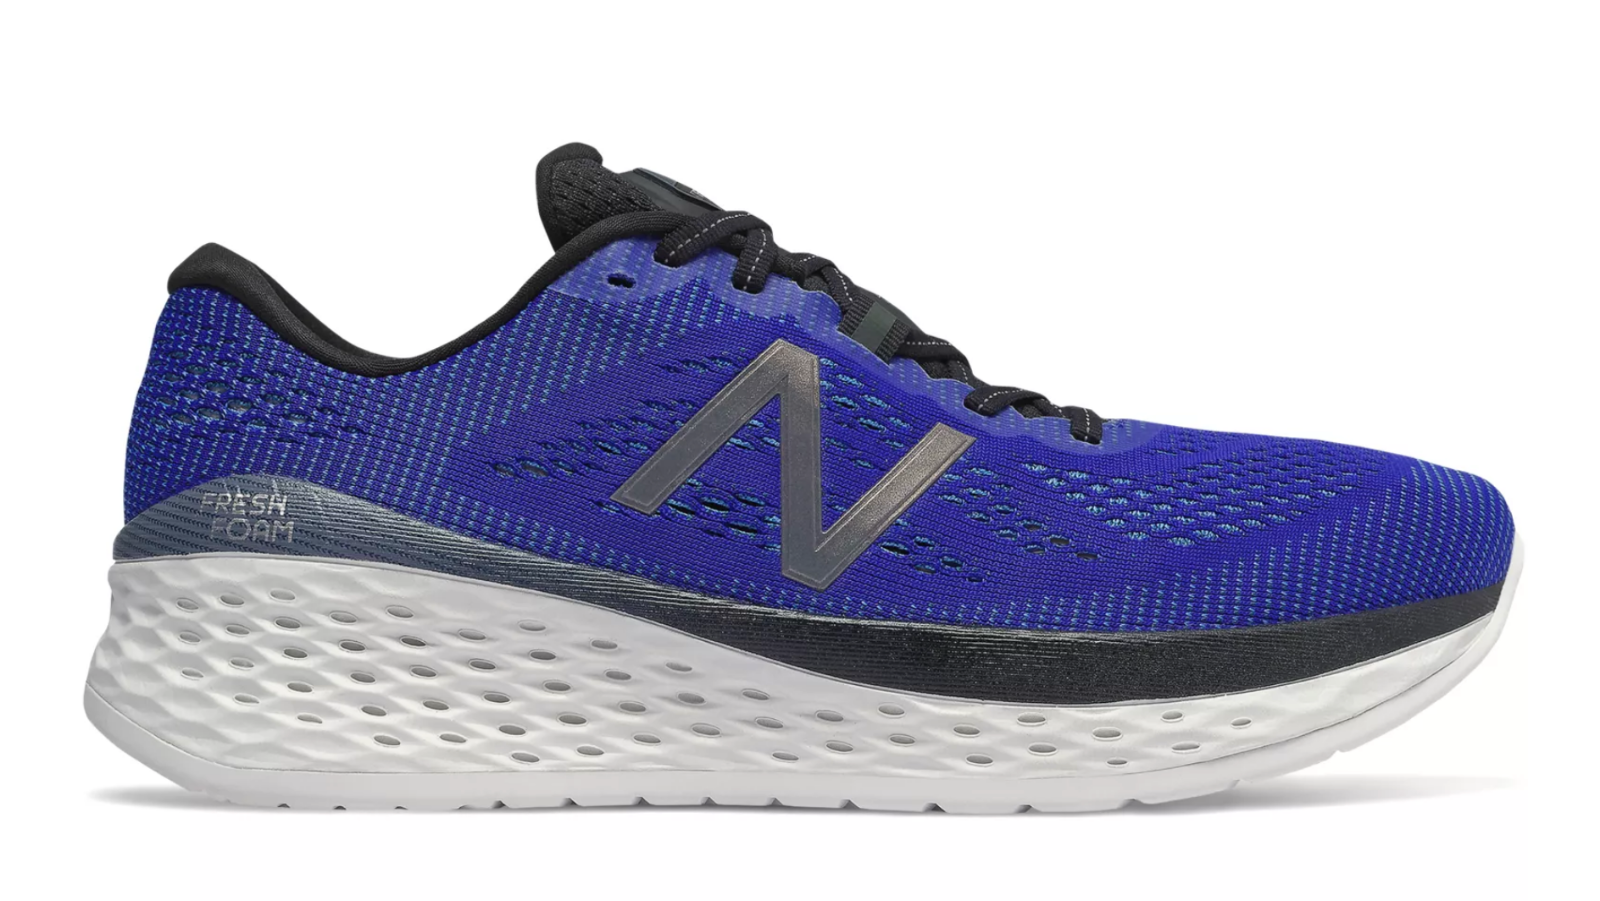 NEW BALANCE FRESHFOAM MORE Herren men KEIN  1080 880 890 860